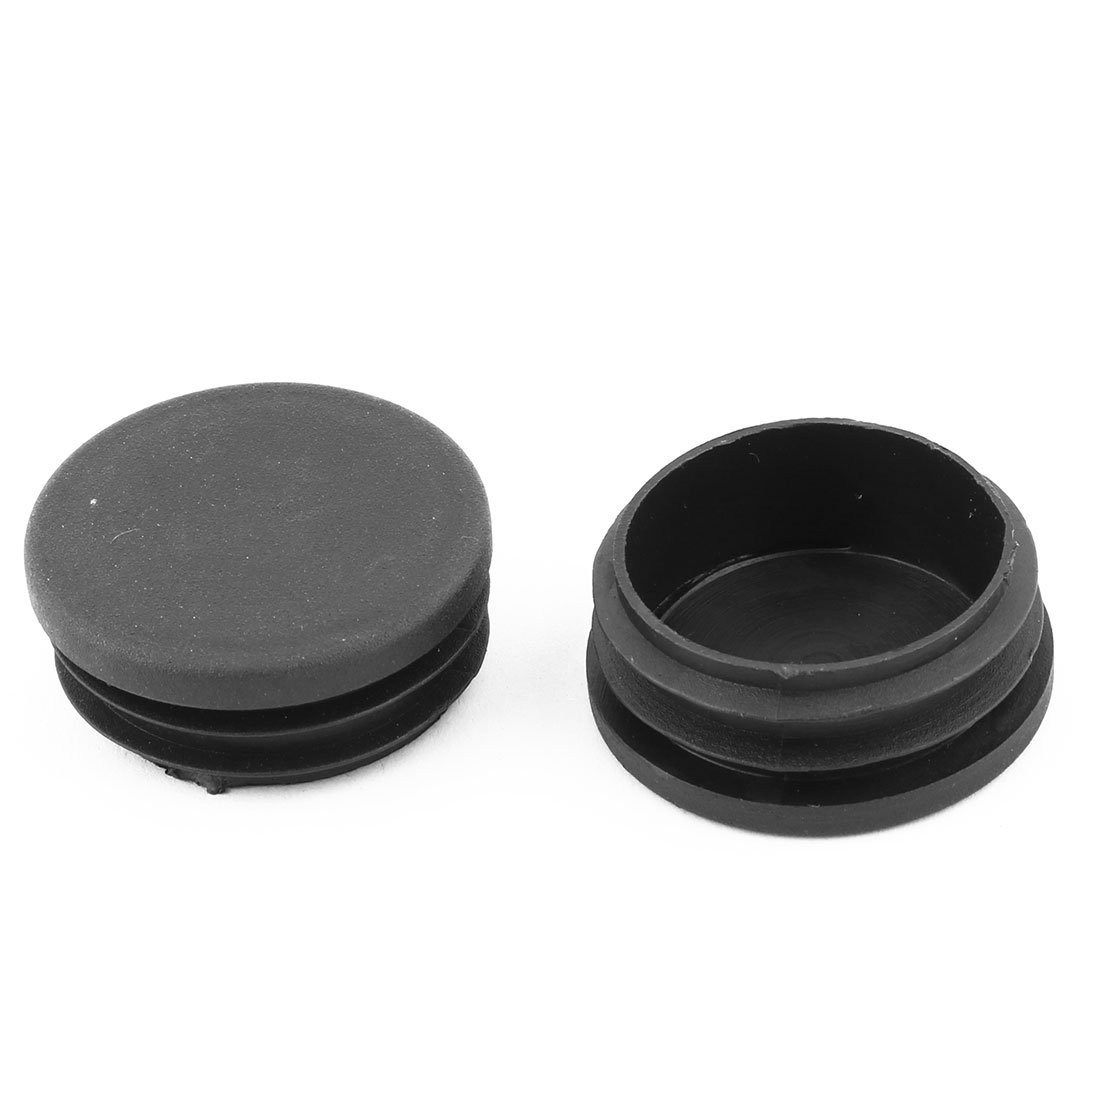 DealMux Plastic Round Table Chair Leg Feet Tube Pipe Insert Blanking End Cap 40mm Dia 16 PCS Black DLM-B01NCVMTZF